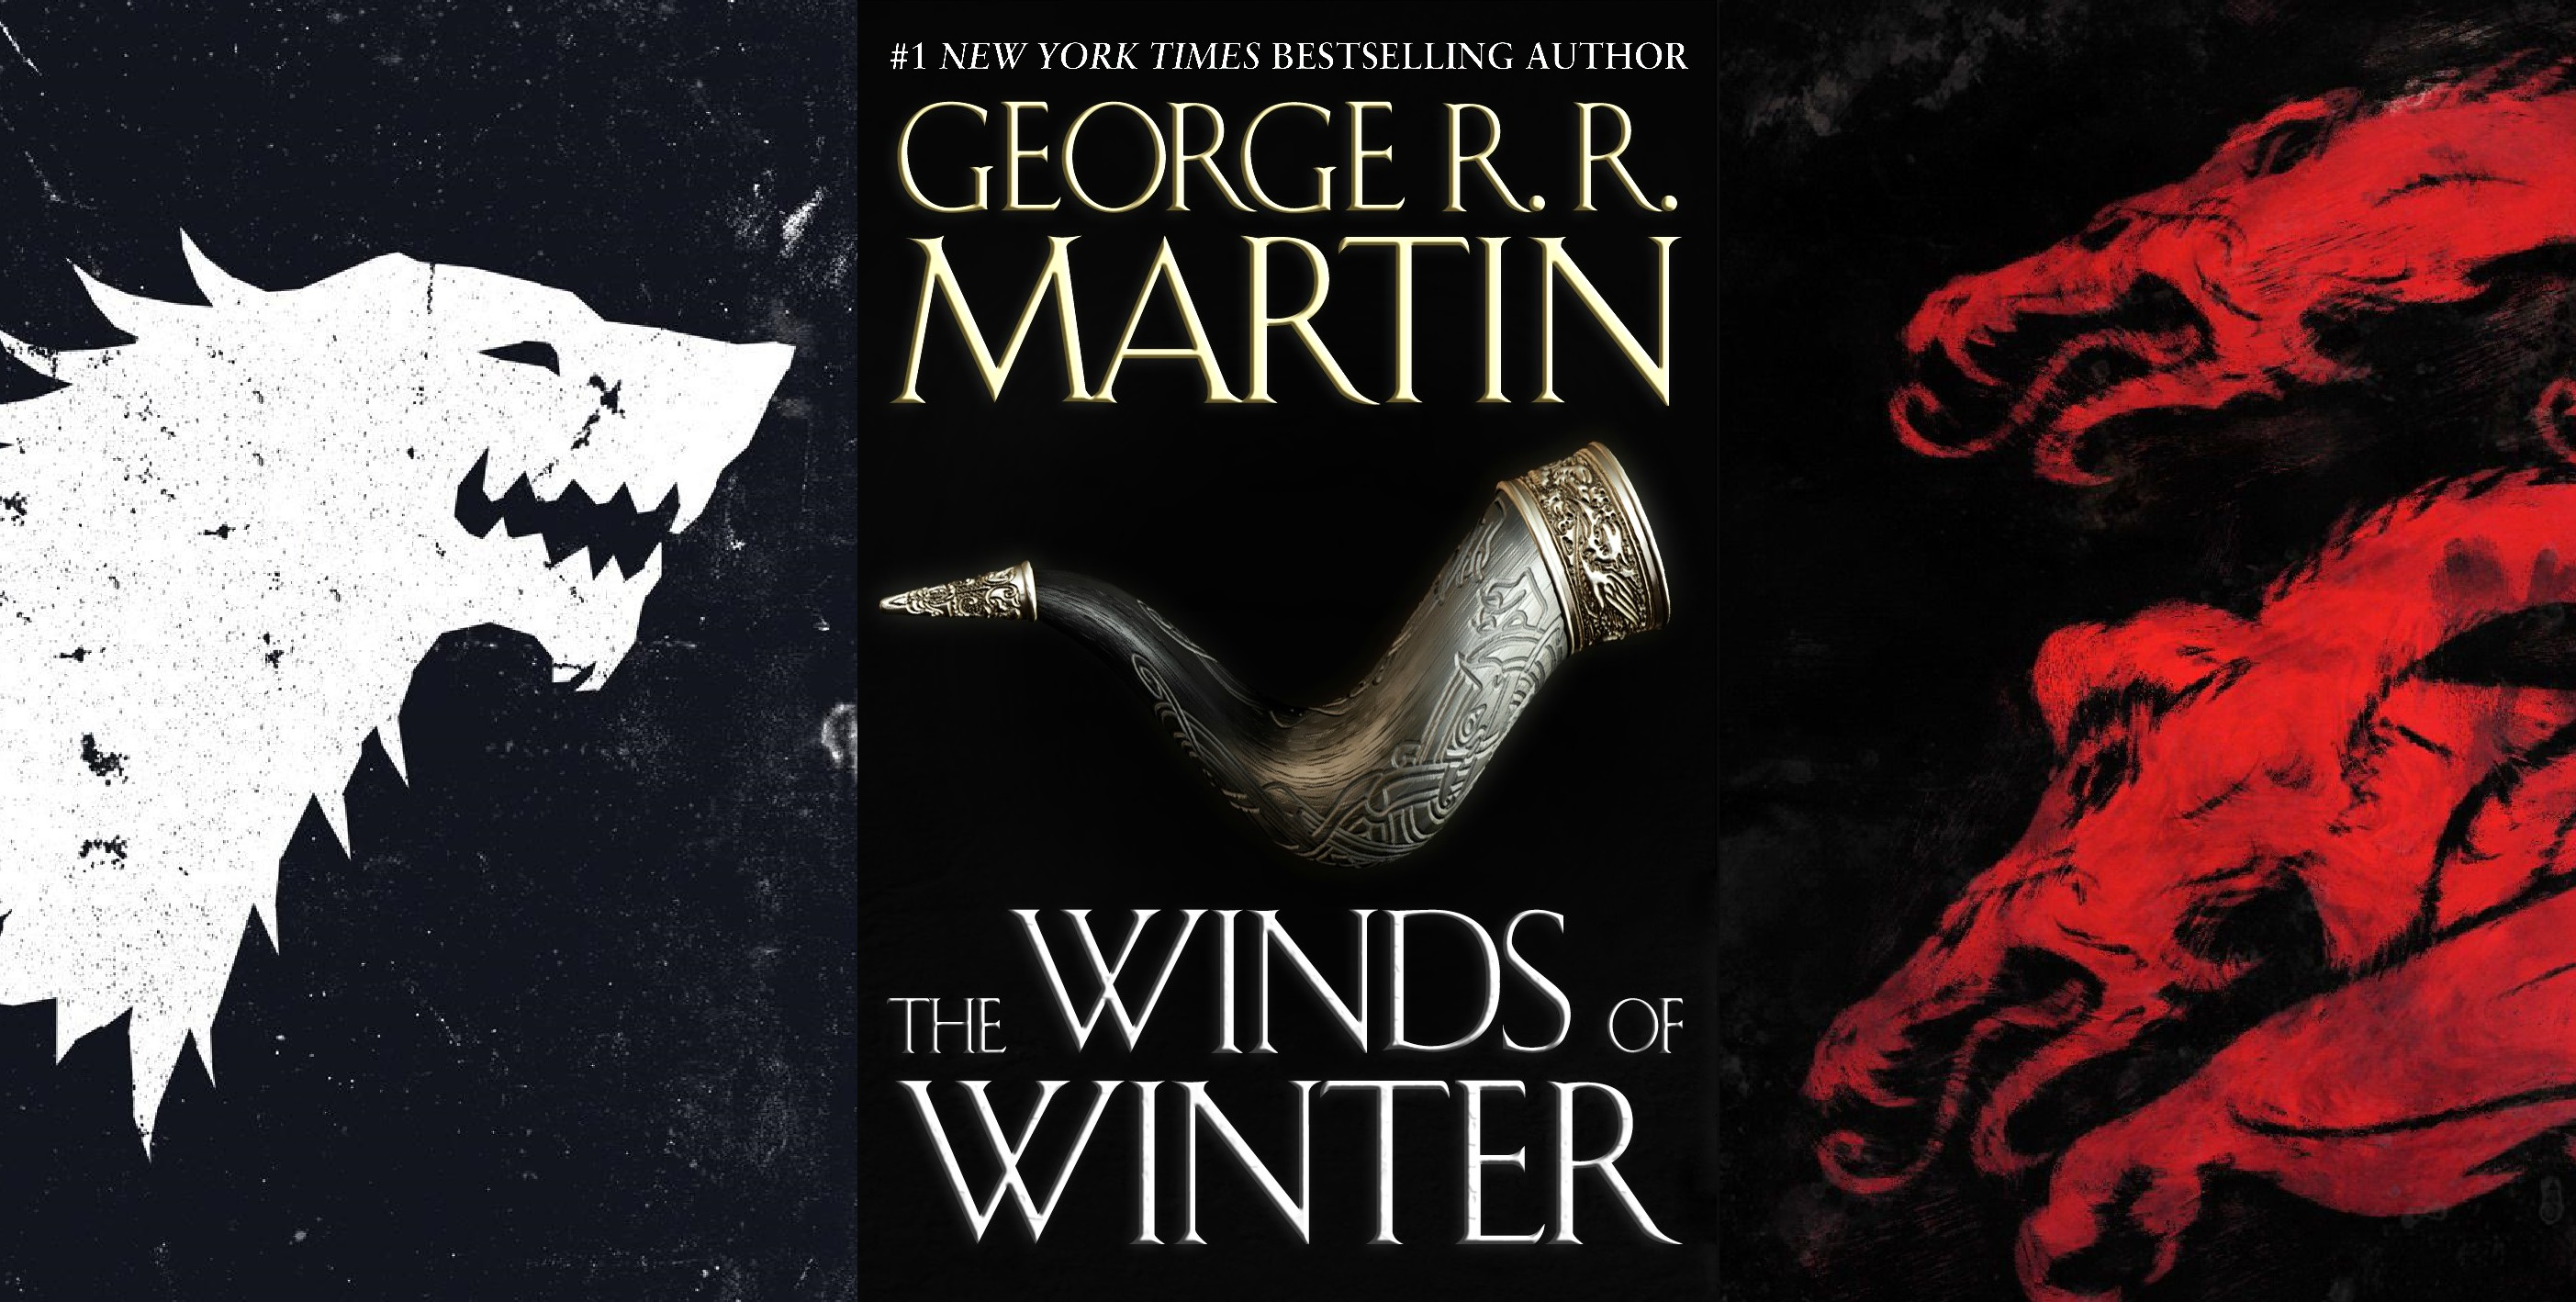 The winds of winter release date in Australia